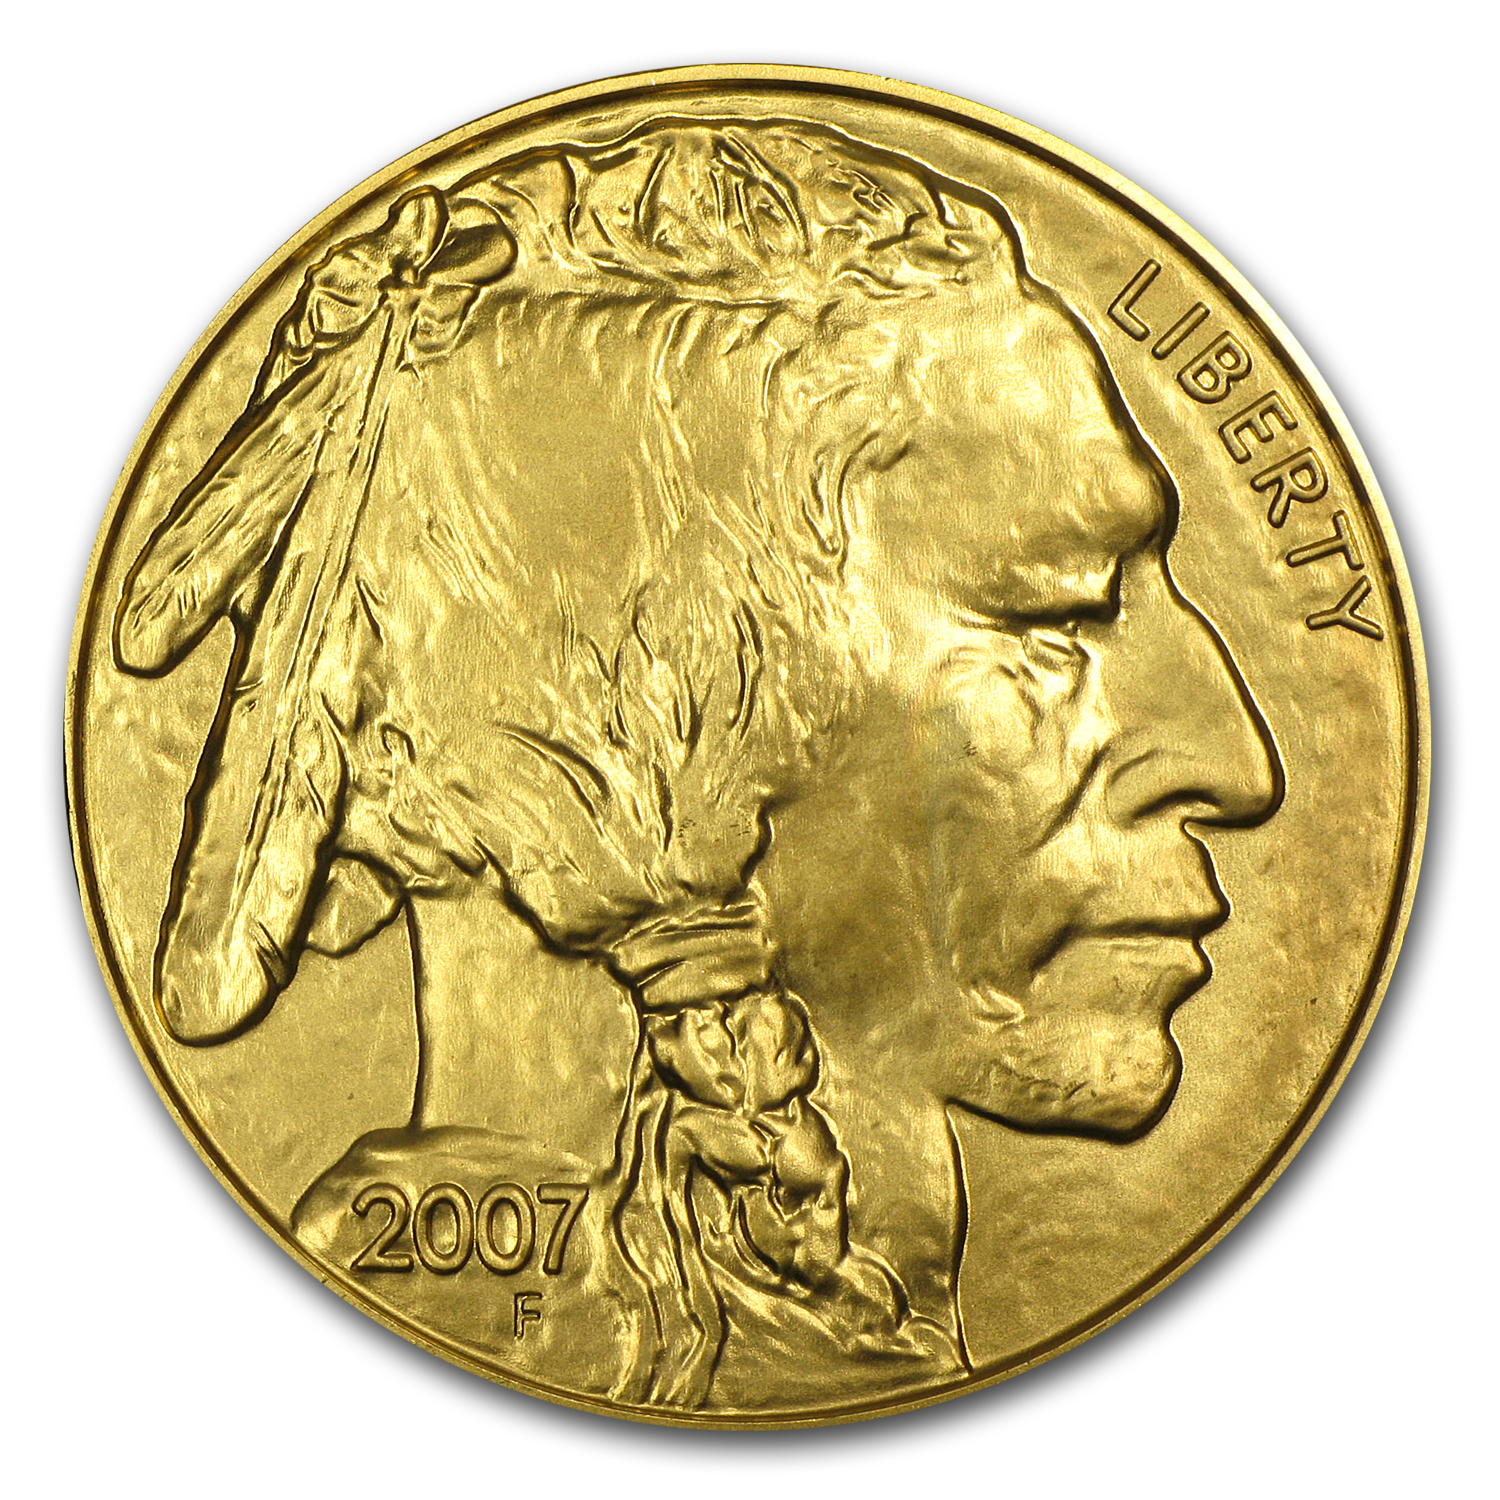 2007 1 oz Gold Buffalo - Brilliant Uncirculated